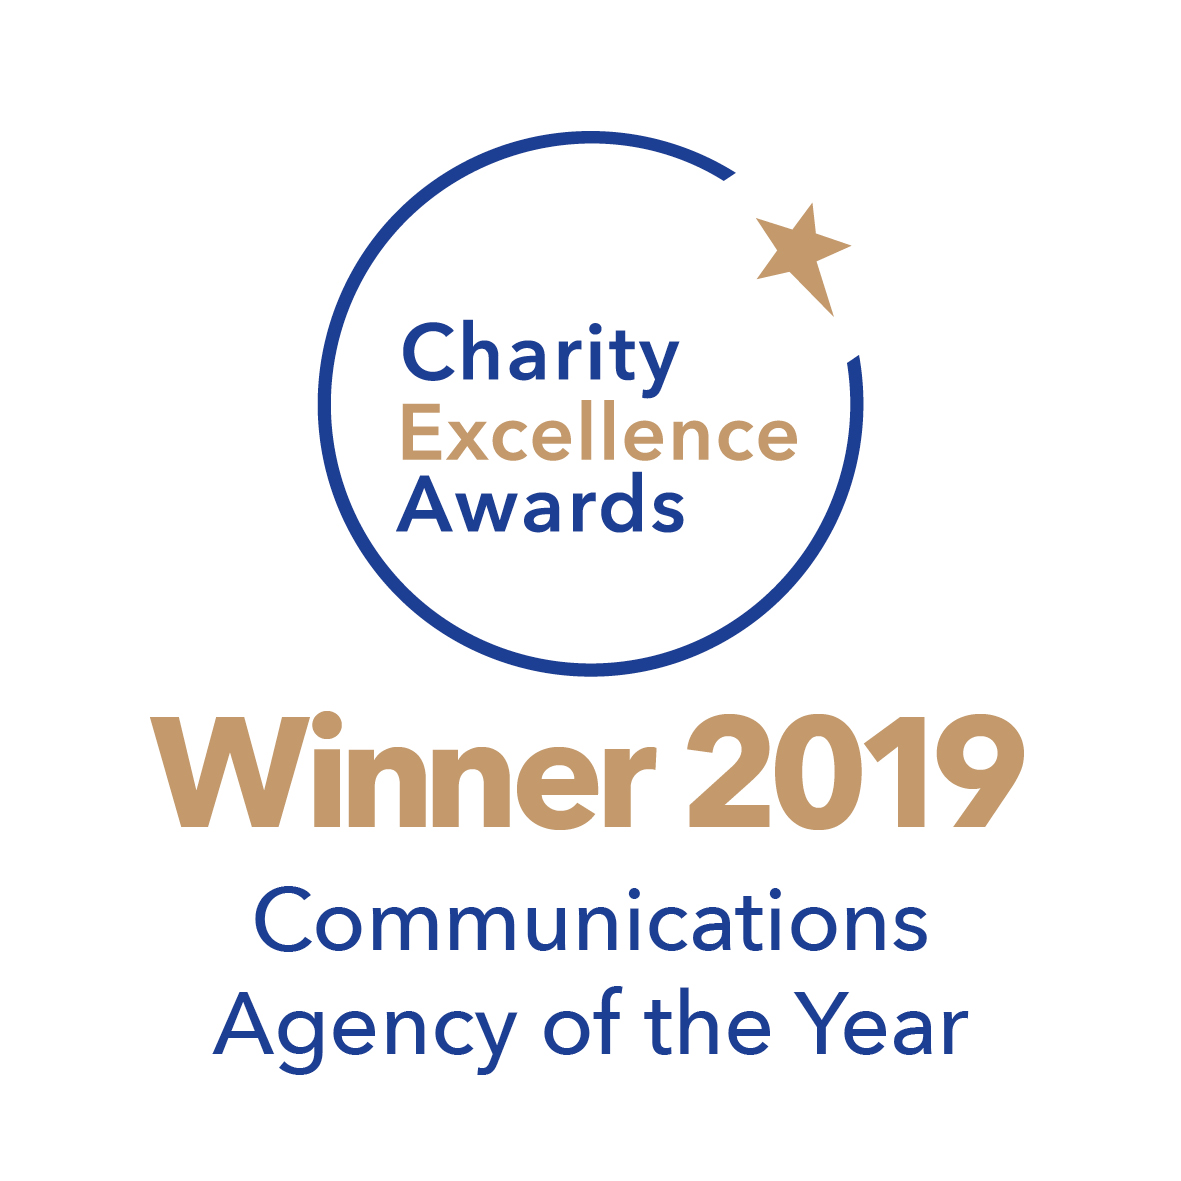 Charity Awards Winner_AGENCY.jpg